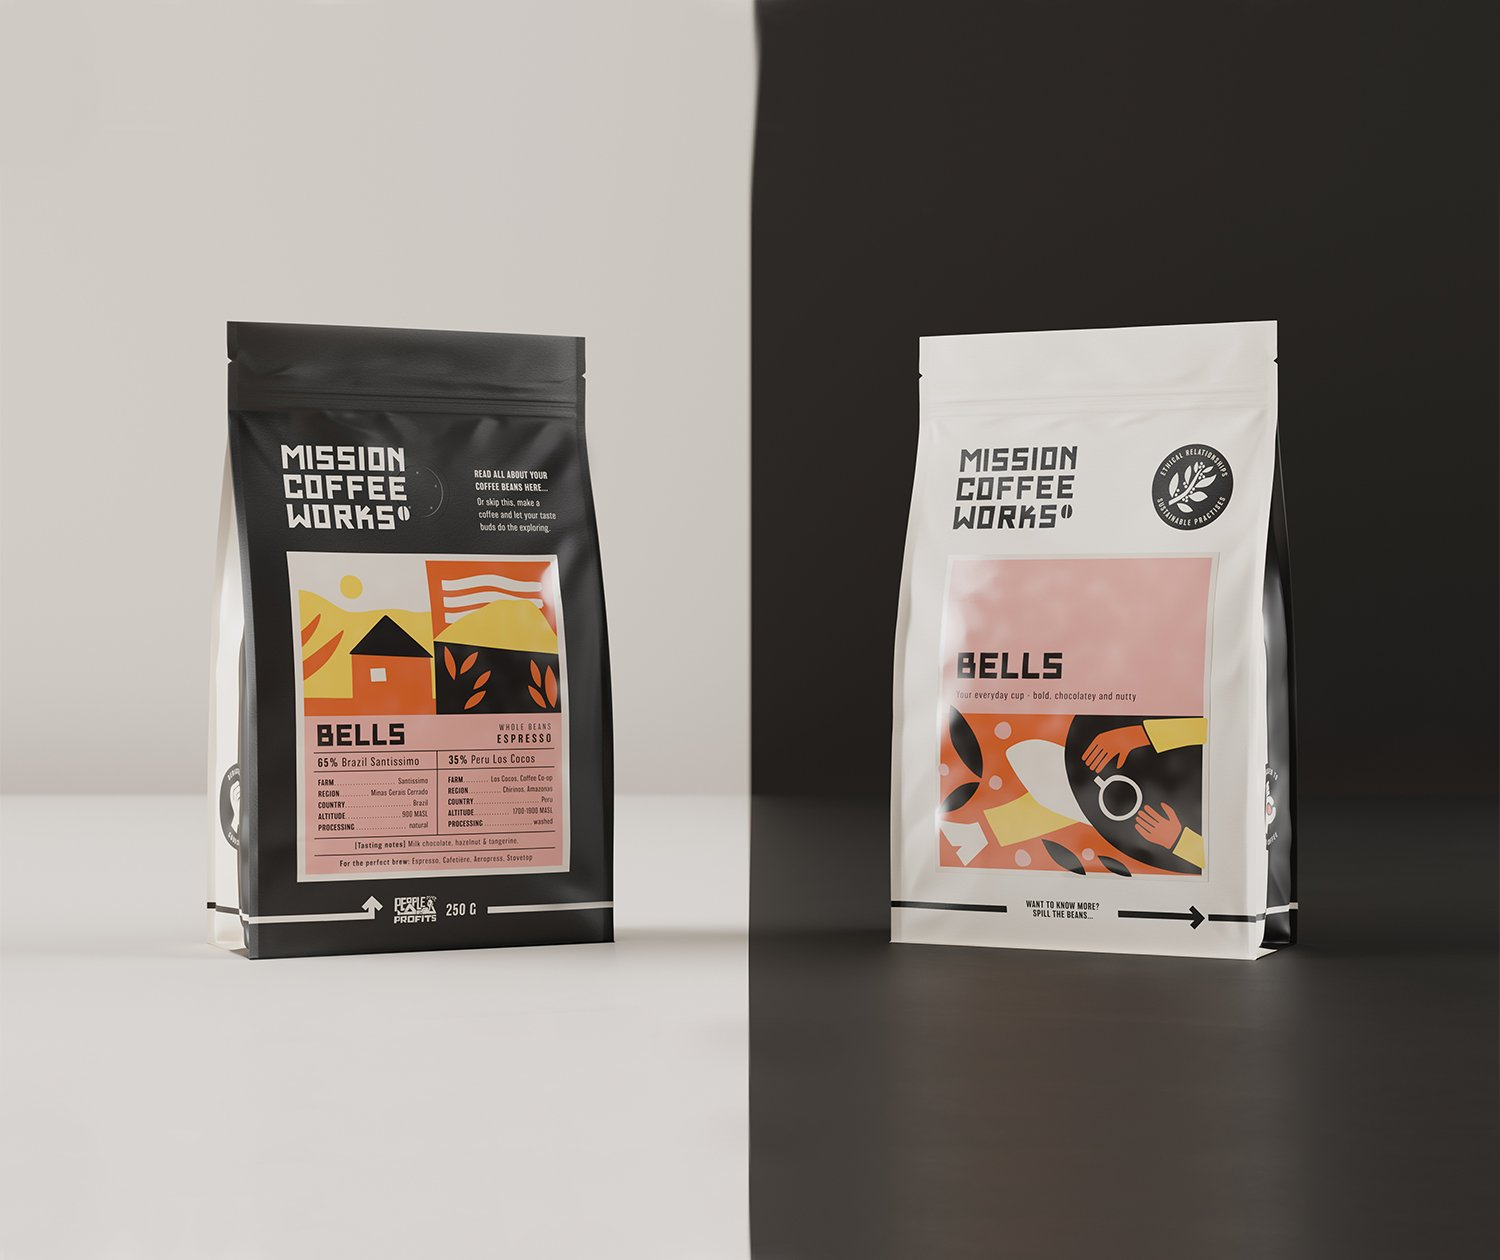 Two sides of a mission coffee bag